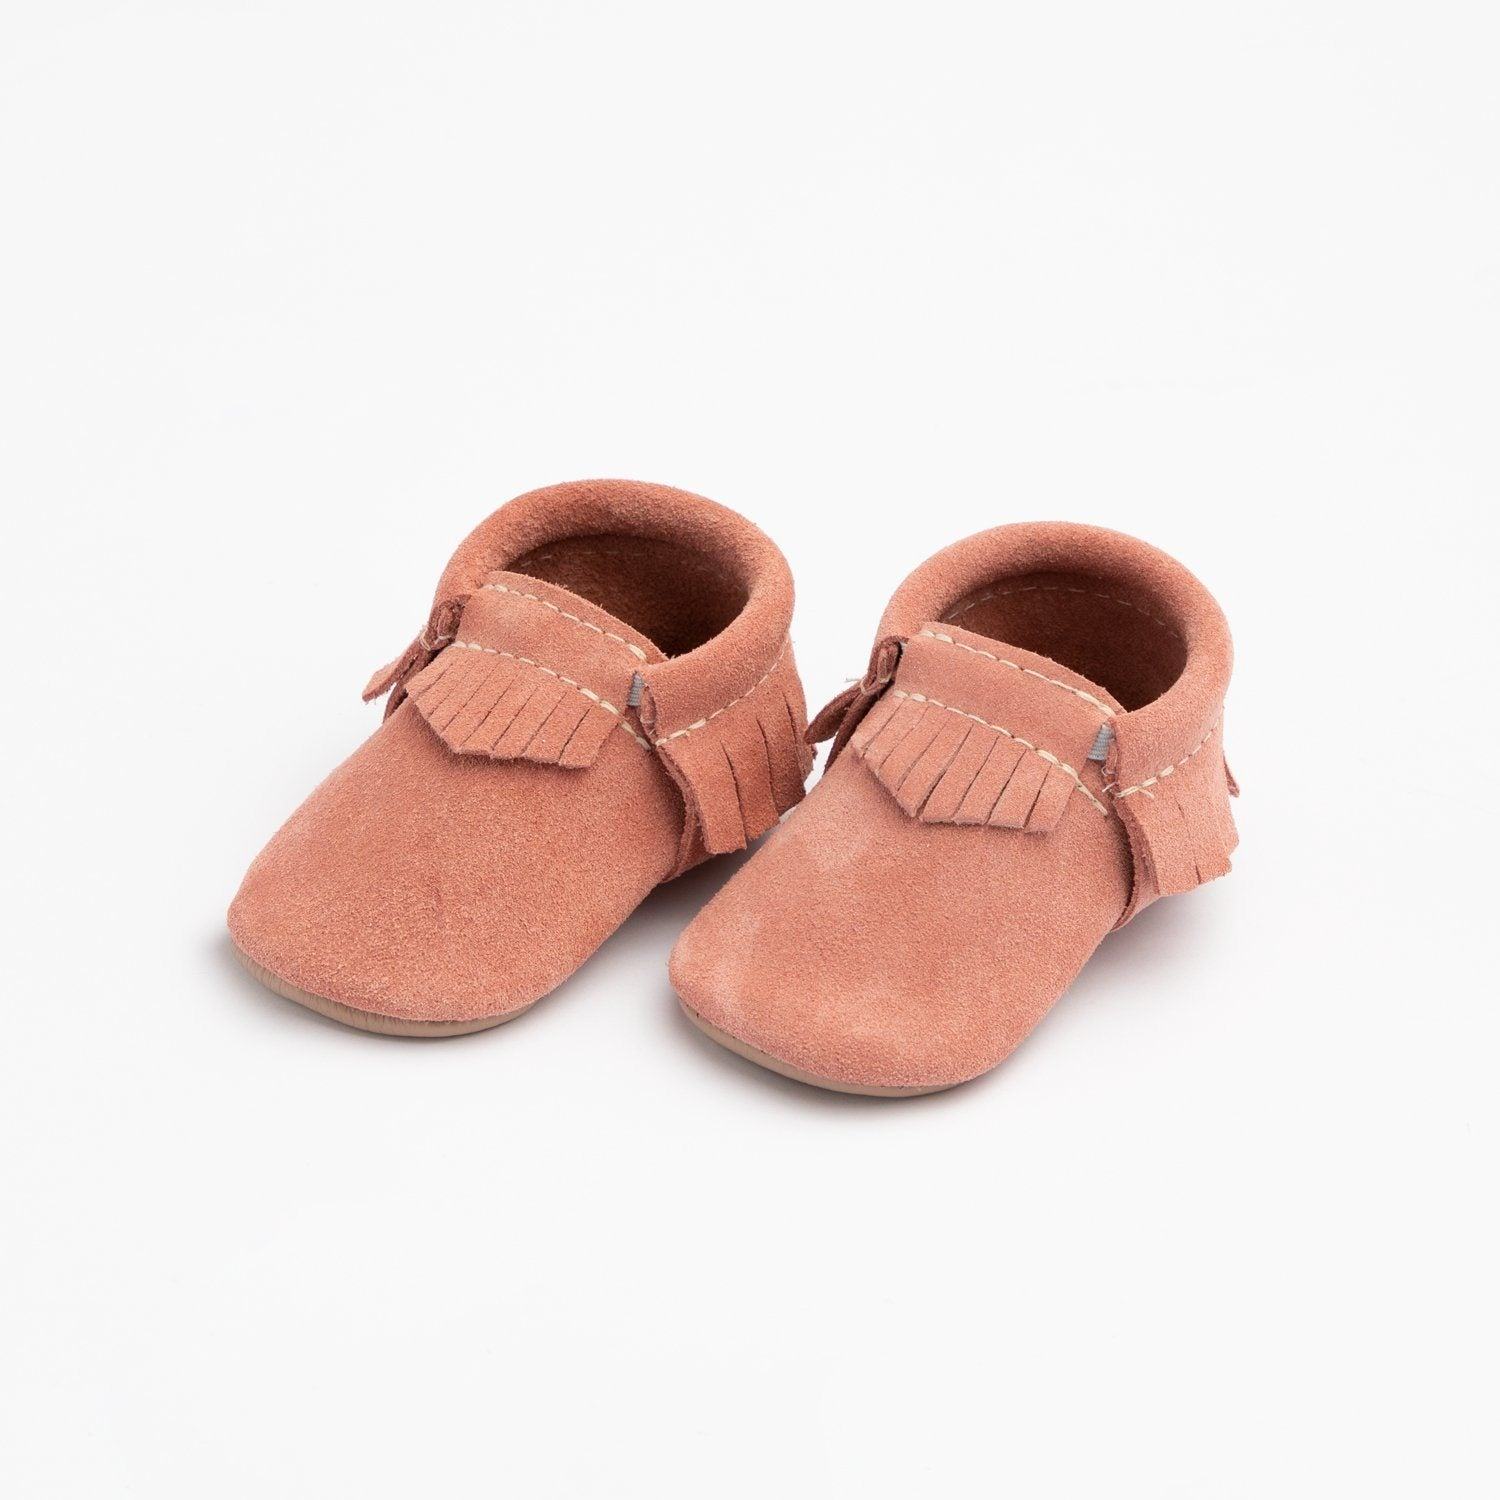 Peachy Pink Suede Moccasins Soft Soles